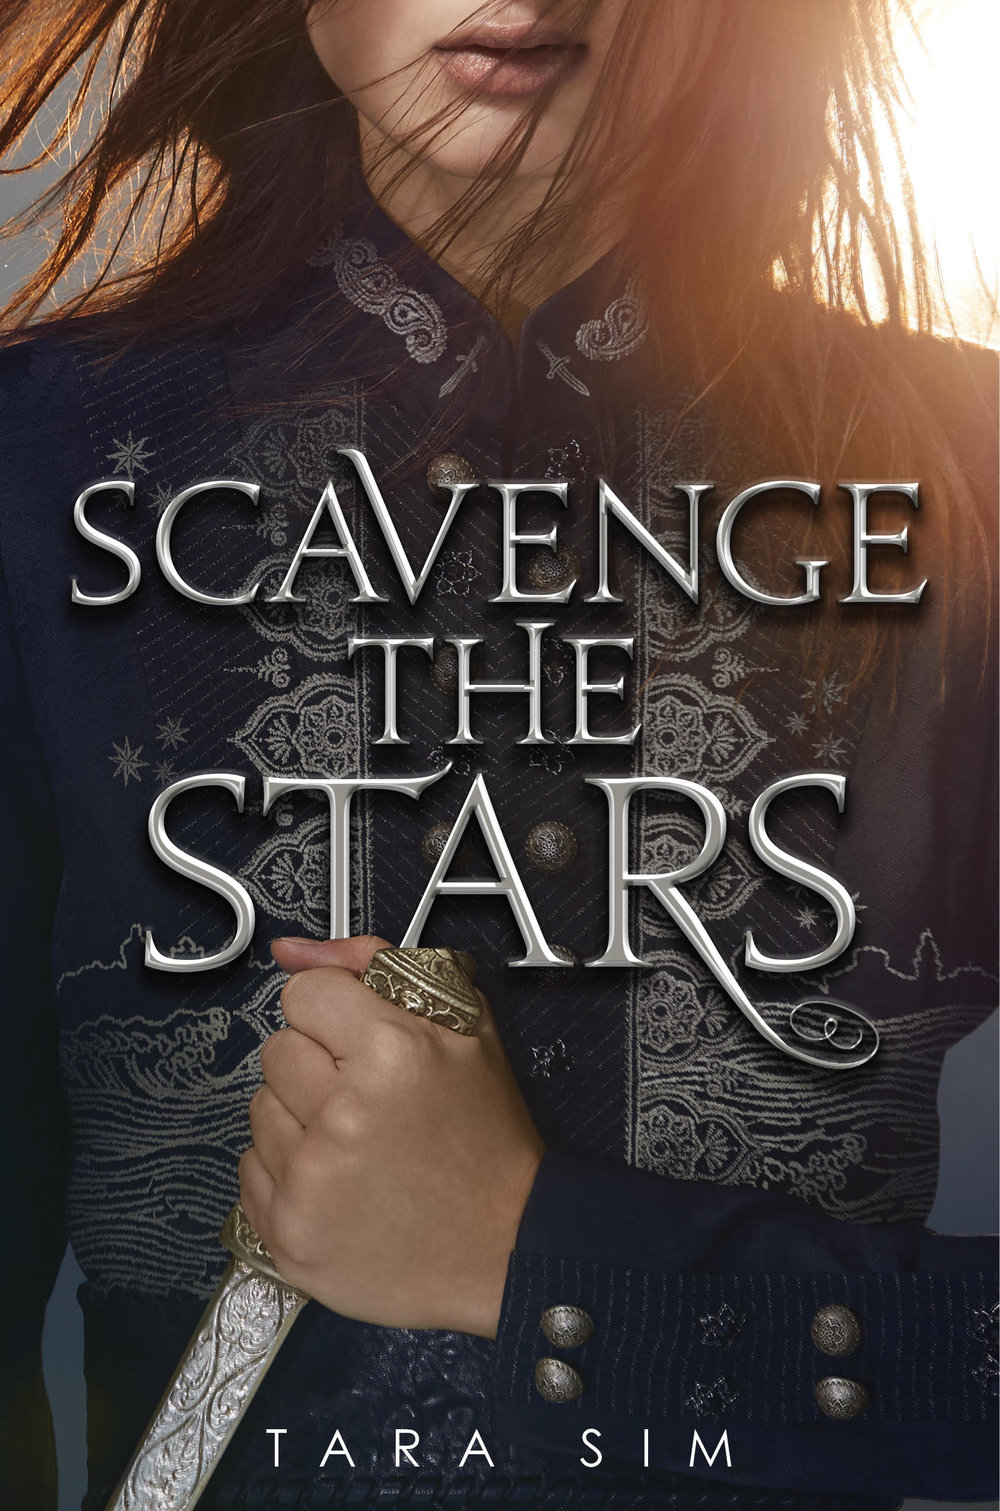 """Cover Reveal and Excerpt on Hypable   """"Tara Sim has crafted a story as deep and glittering as the churning sea—it will pull you under its surface from the first page and never let you go.""""  - New York Times bestselling author Laura Sebastian"""